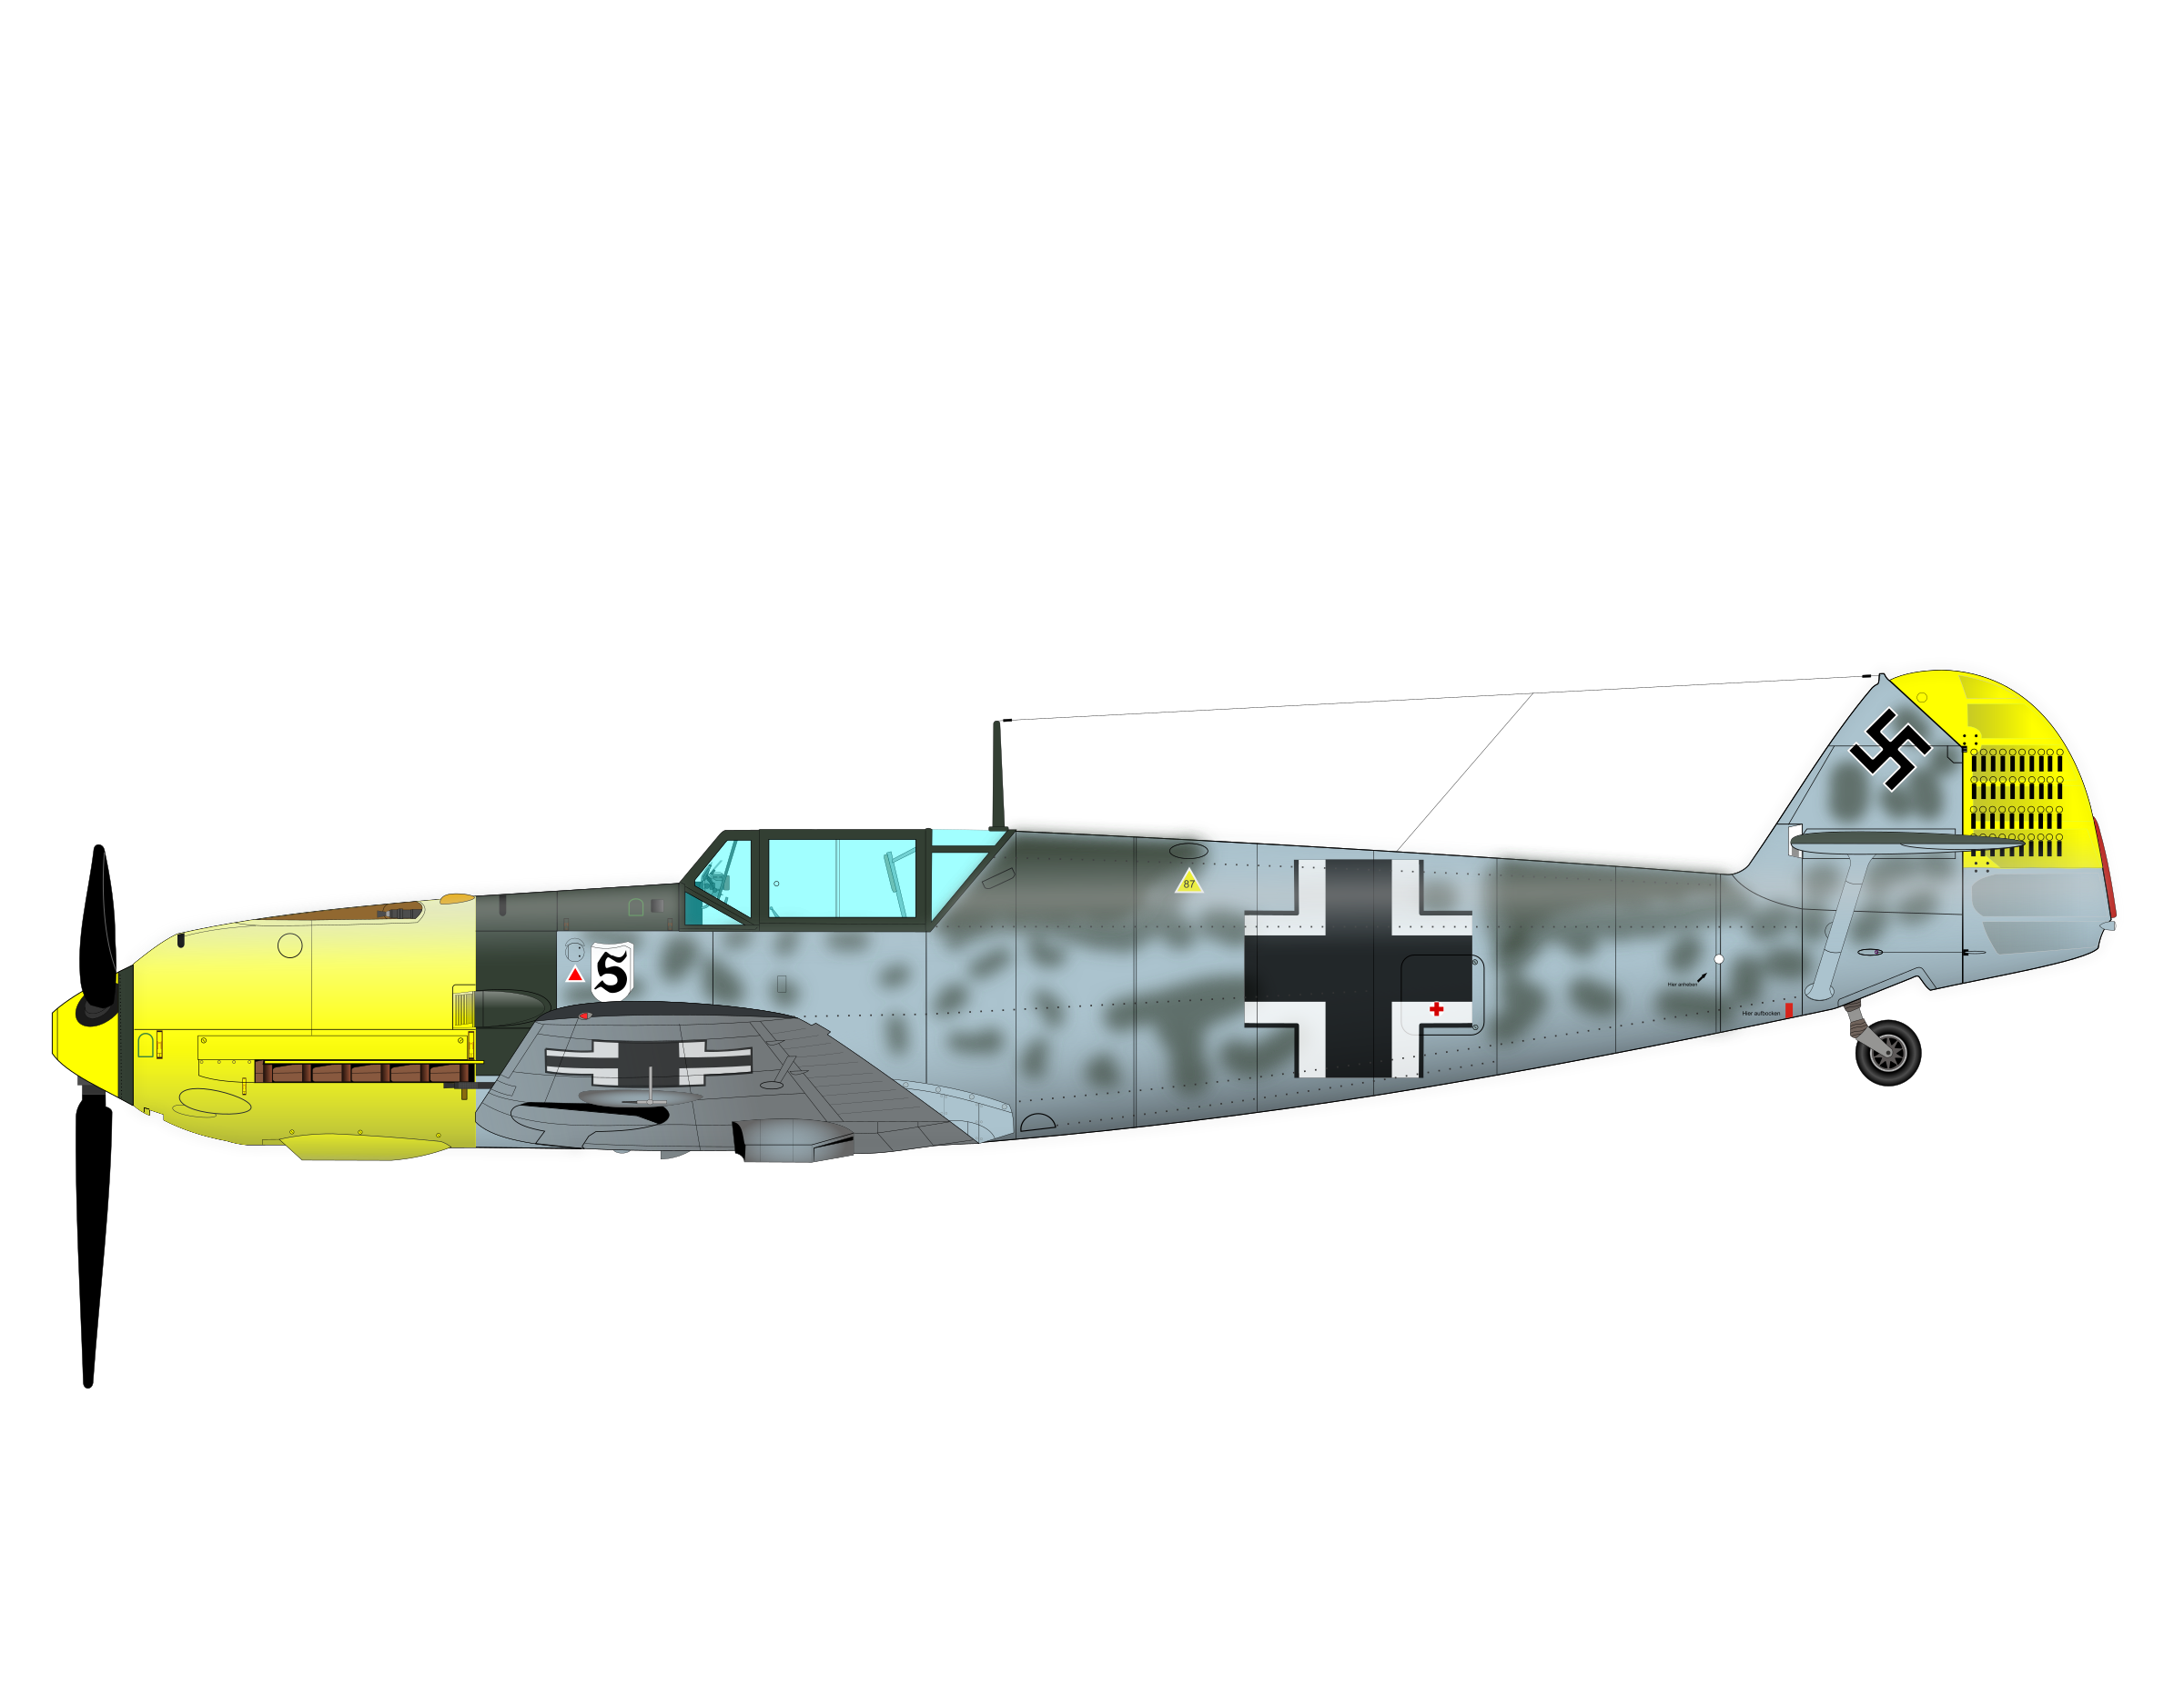 ME-109 by charner1963